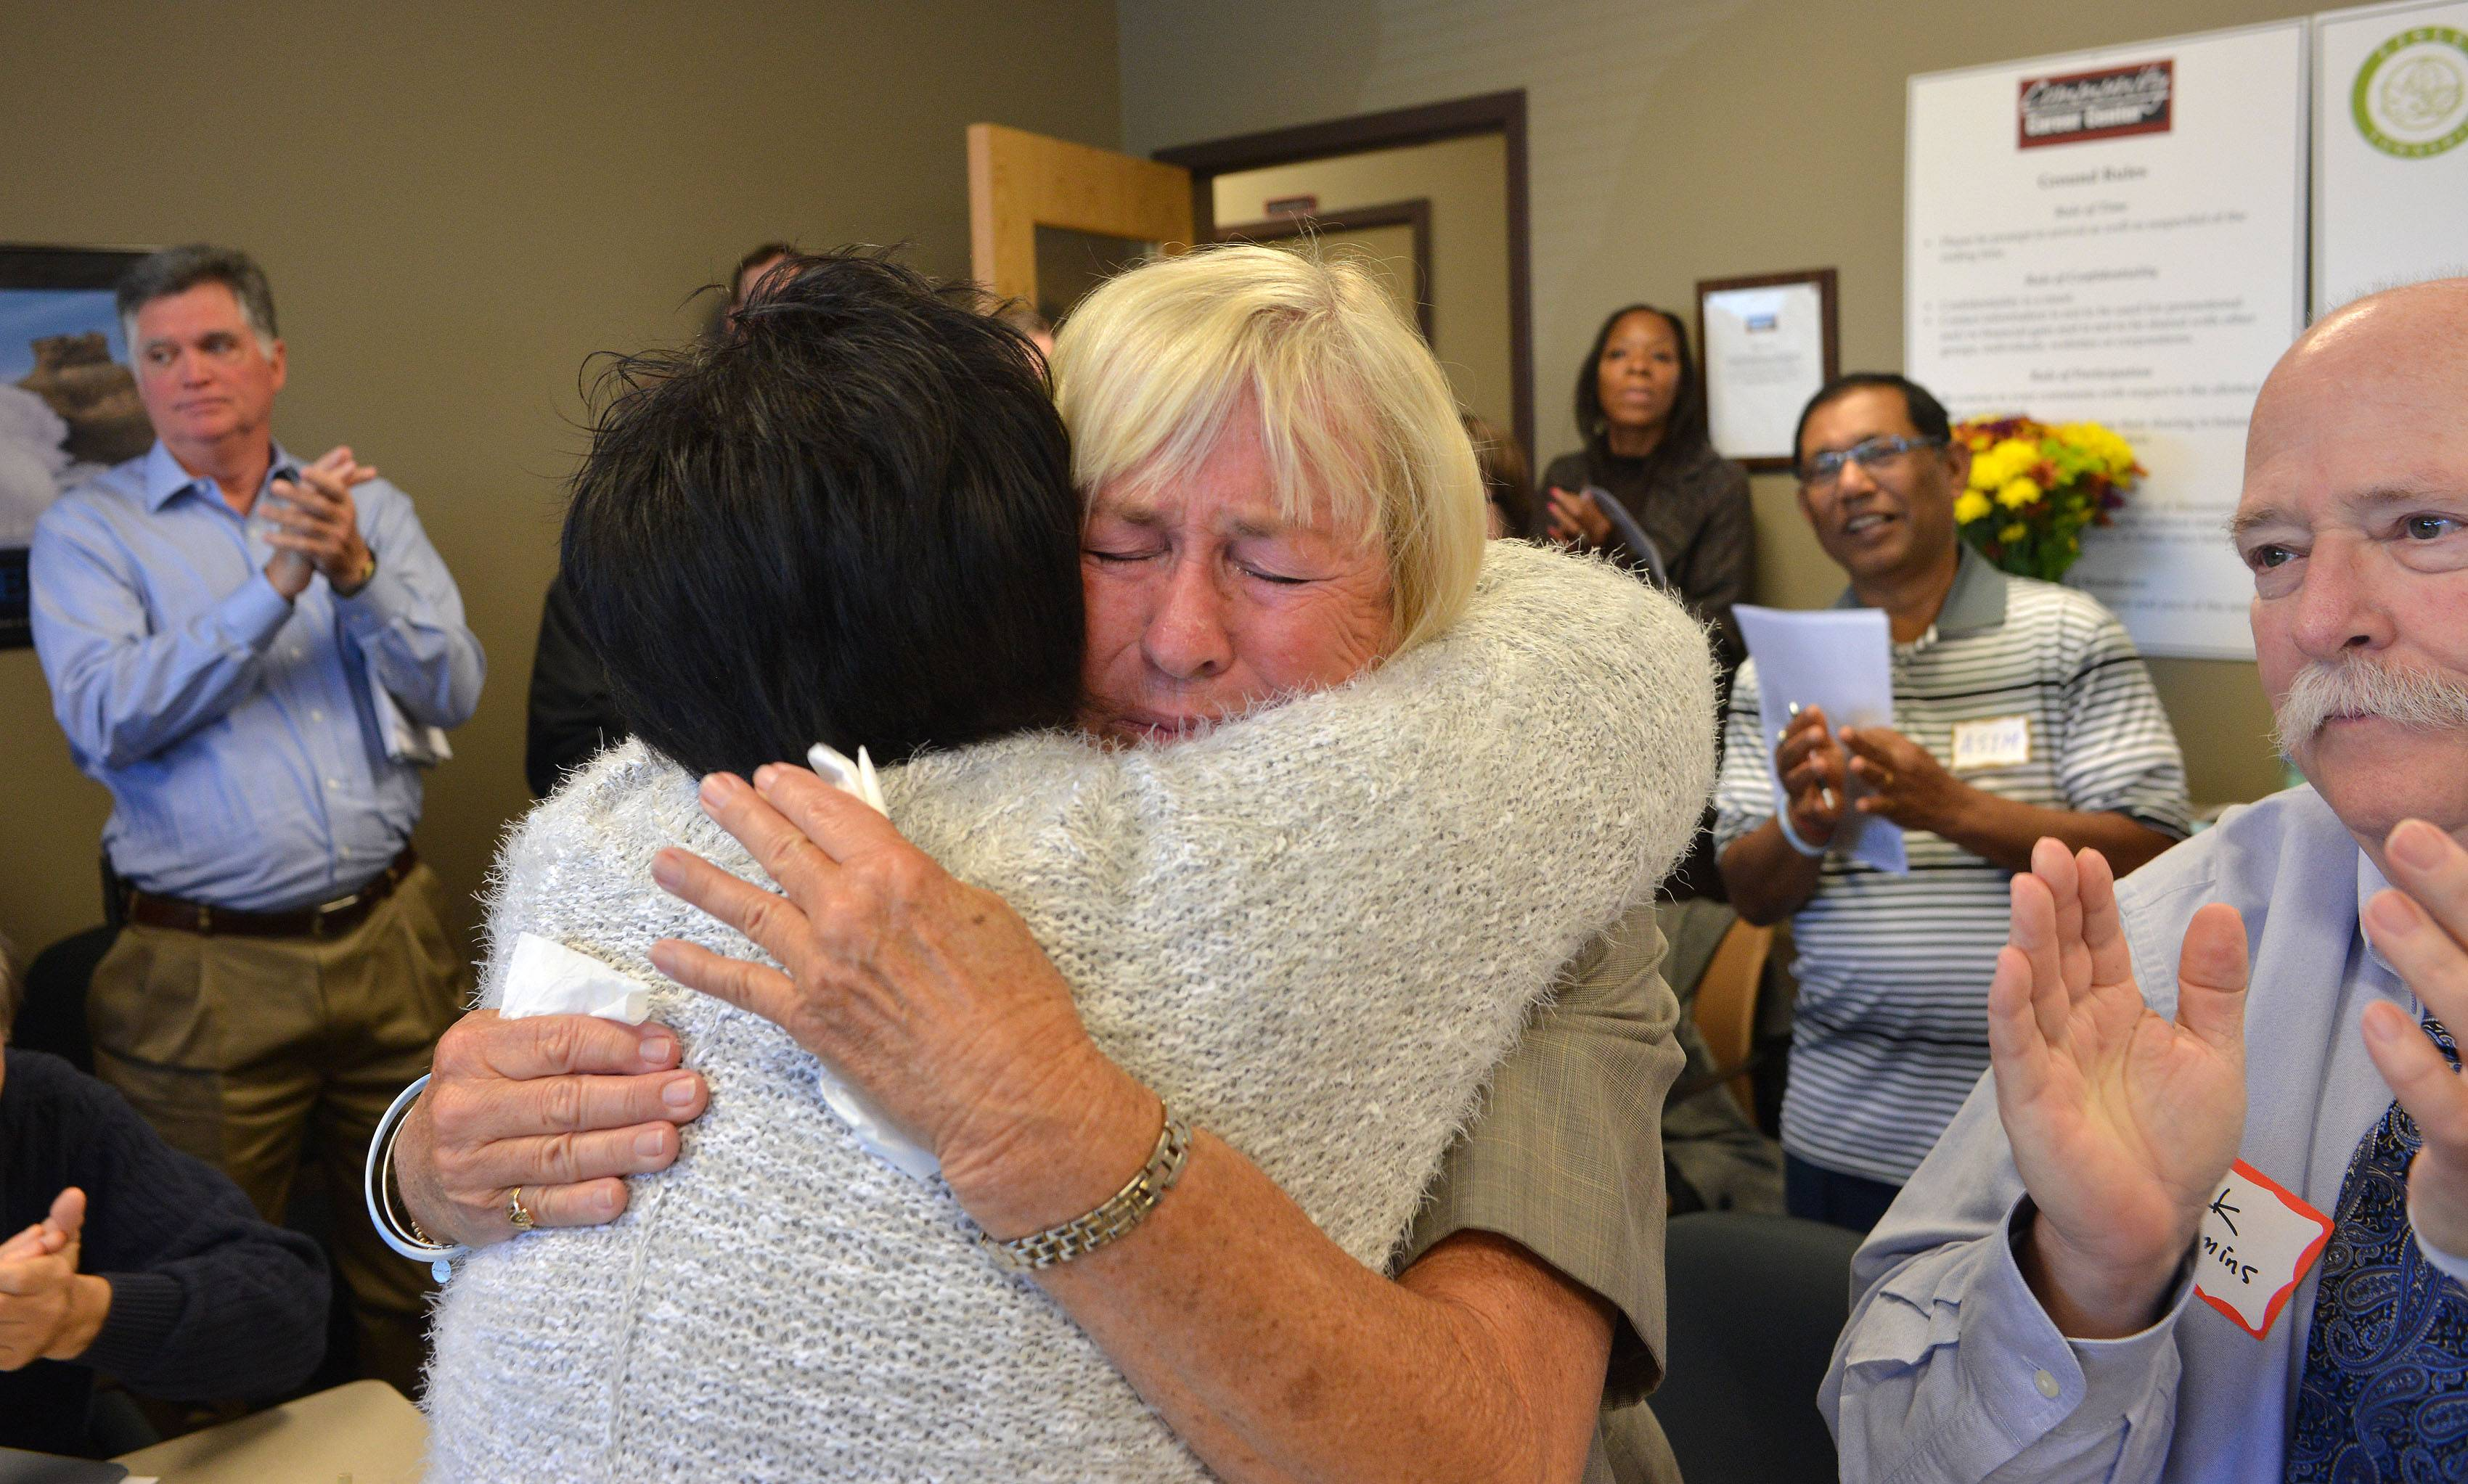 Lisle woman retires from joyful job: Helping jobseekers